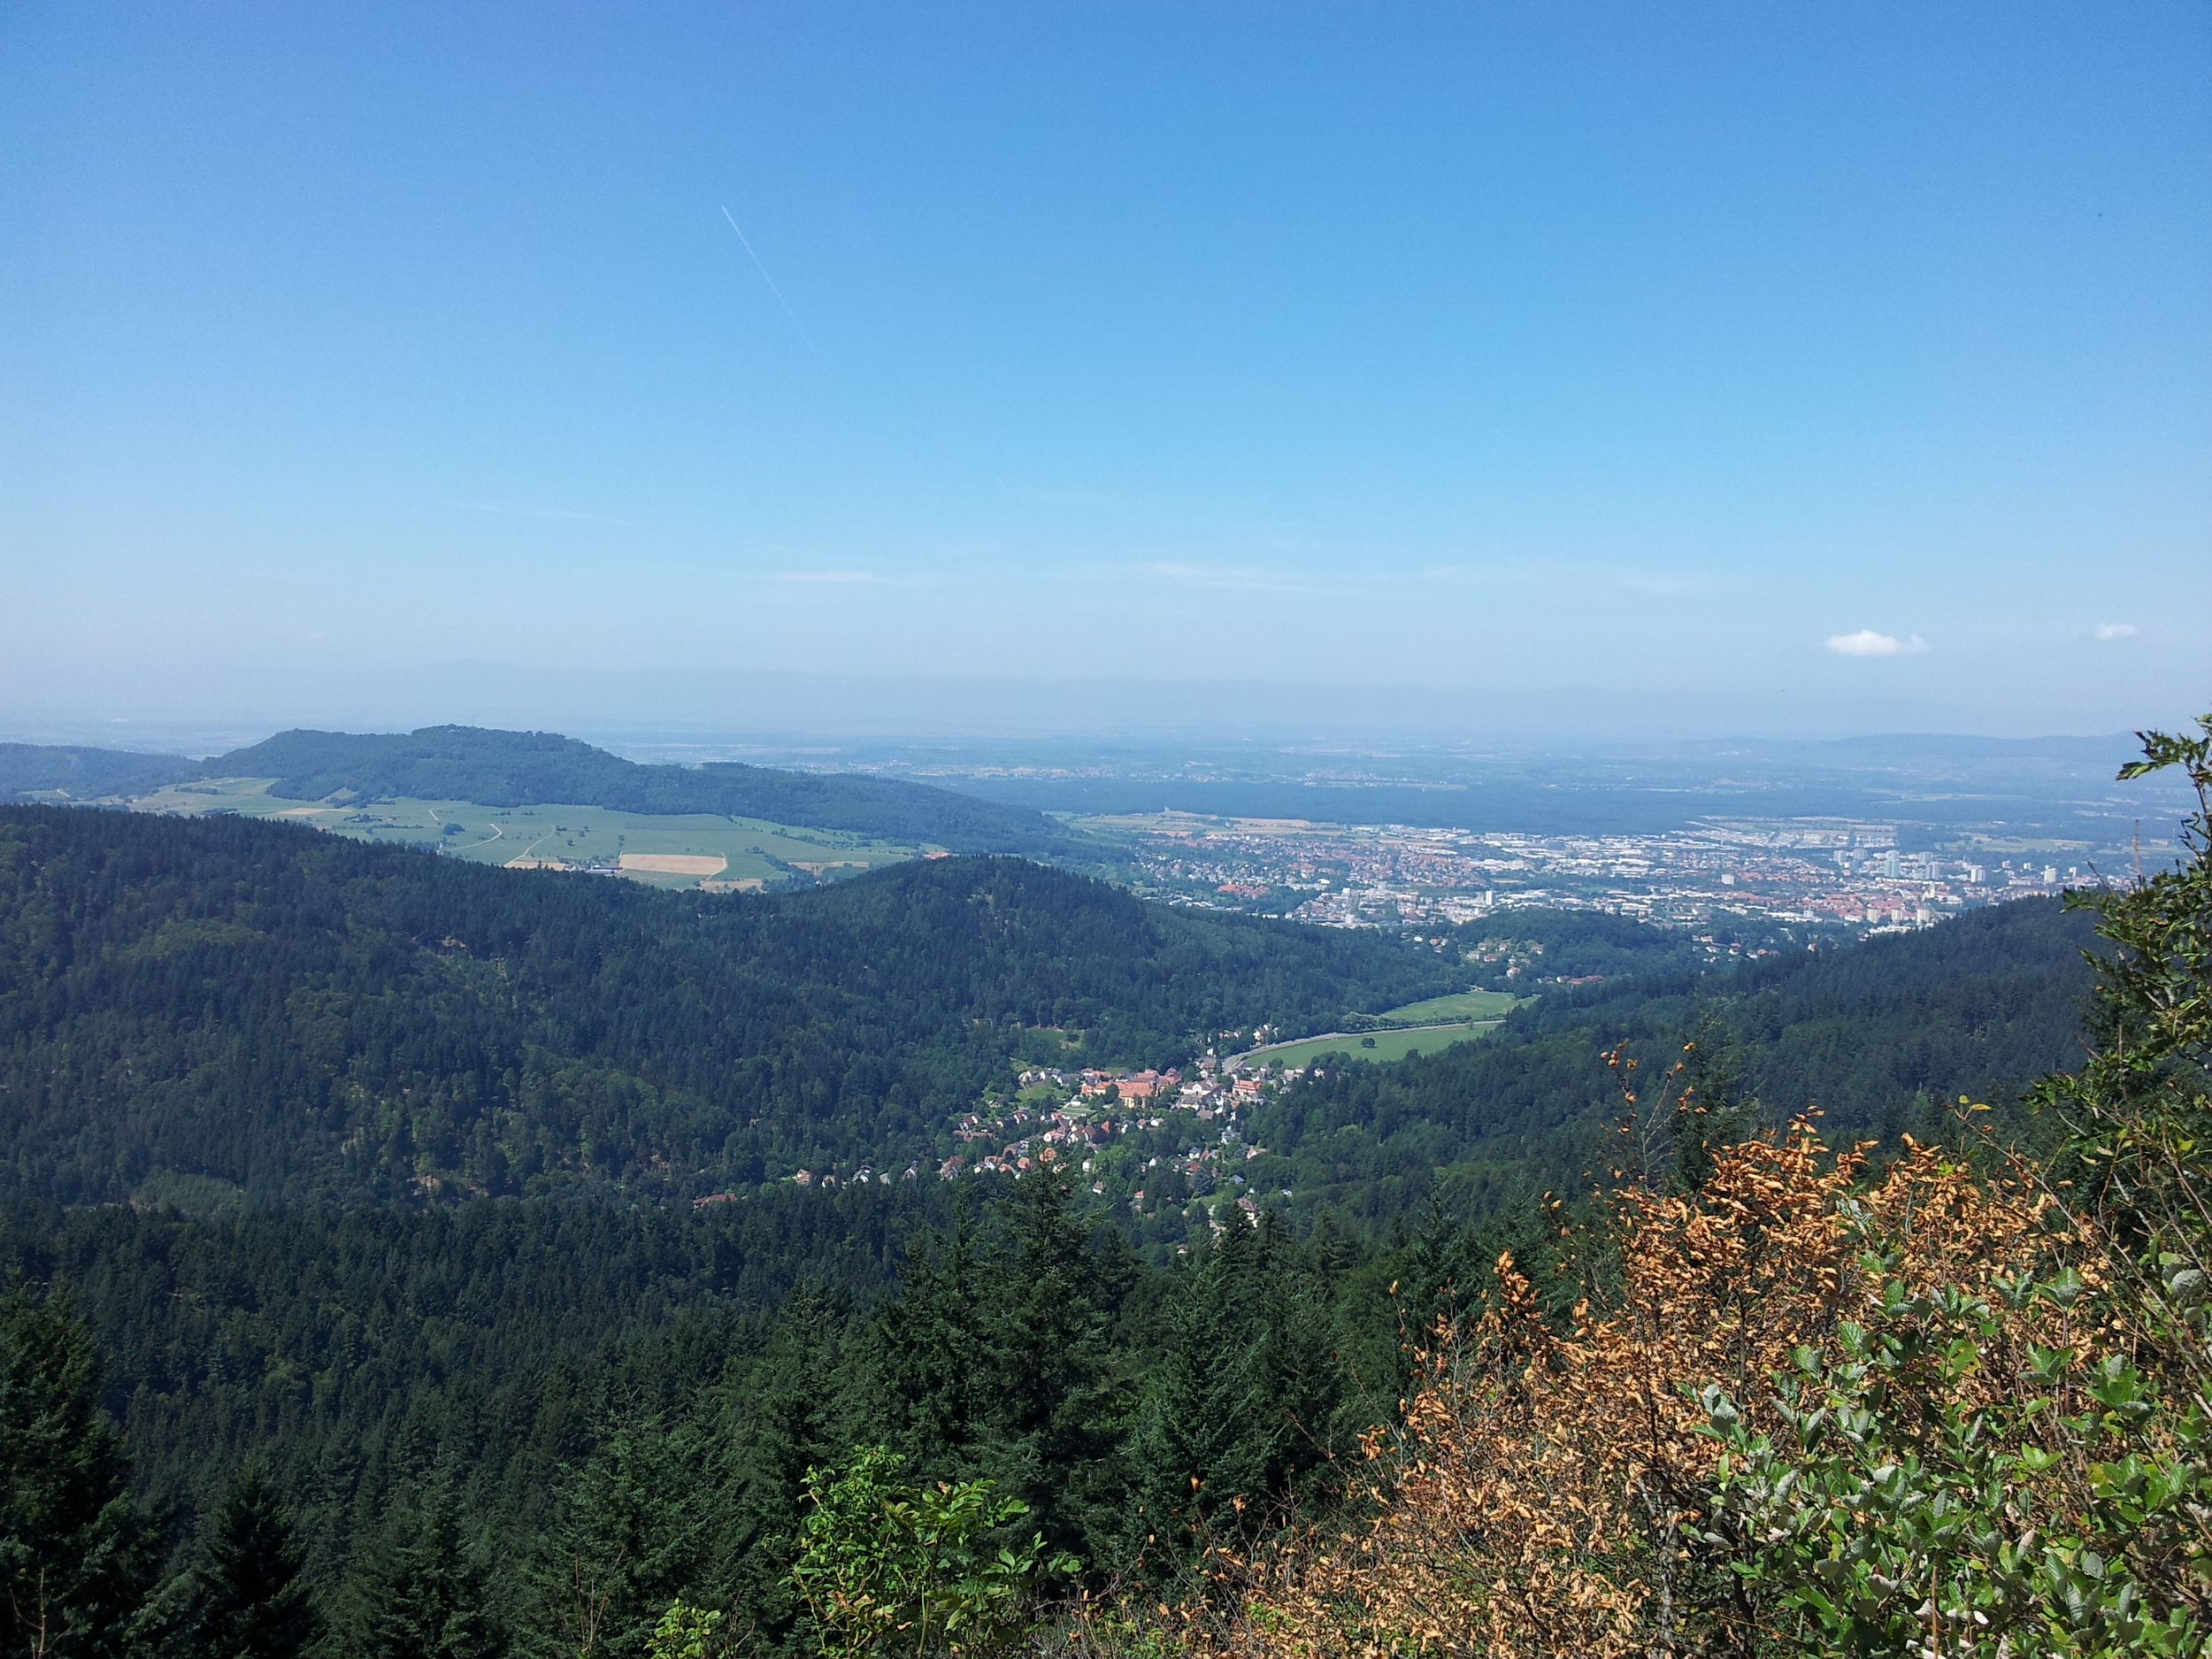 View from the top of the Kybfelsen near Freiburg